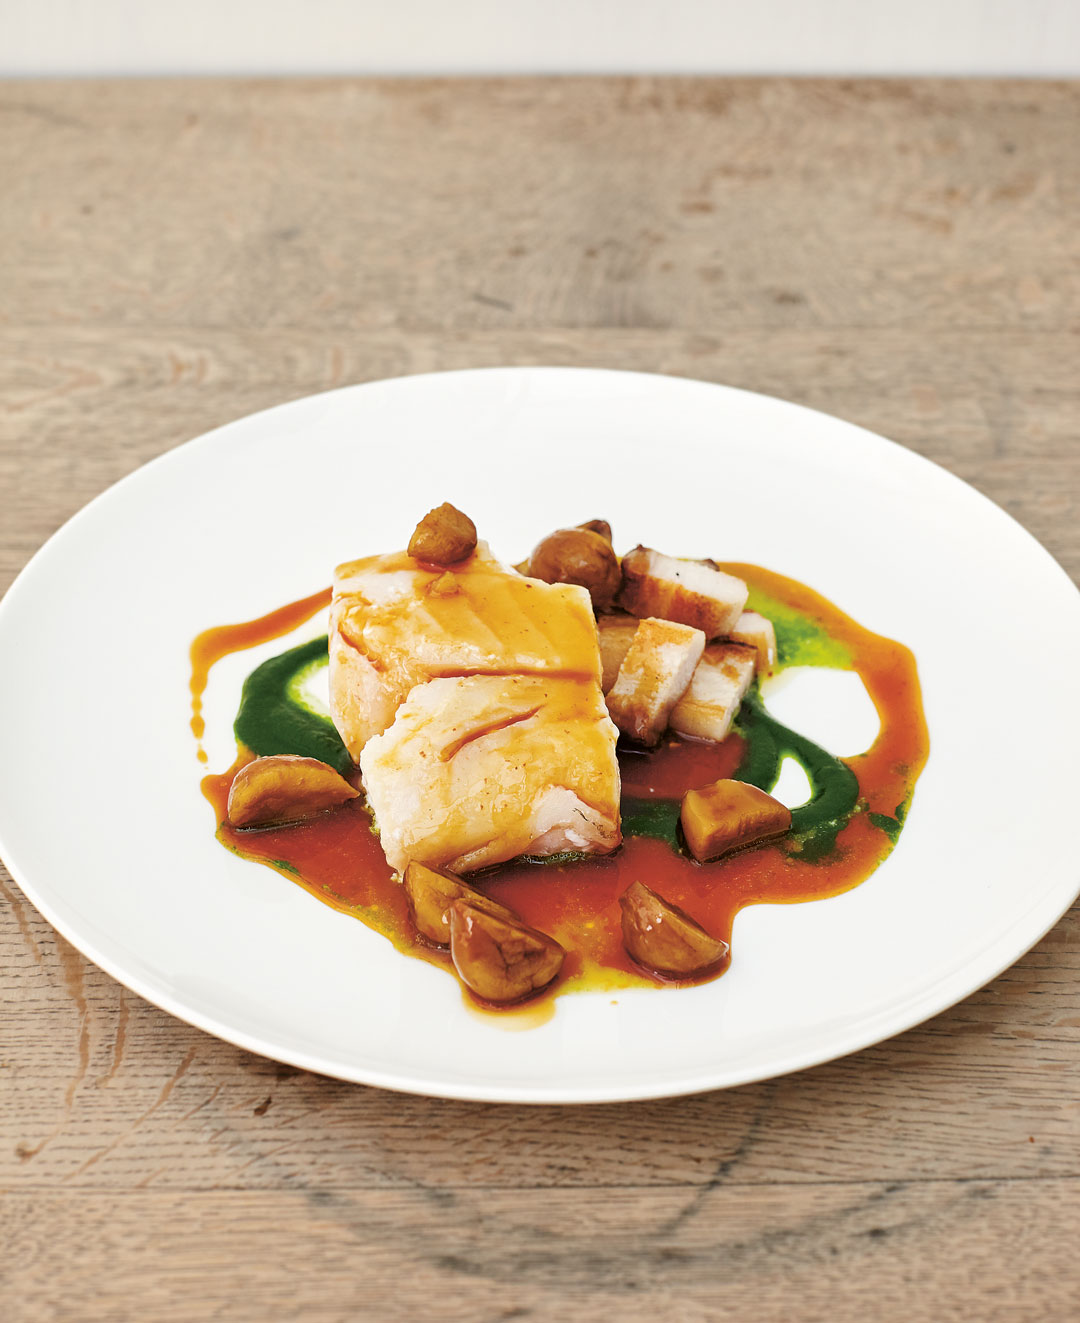 Baked cod with chestnuts, parsley and bacon, as featured in The Sportsman